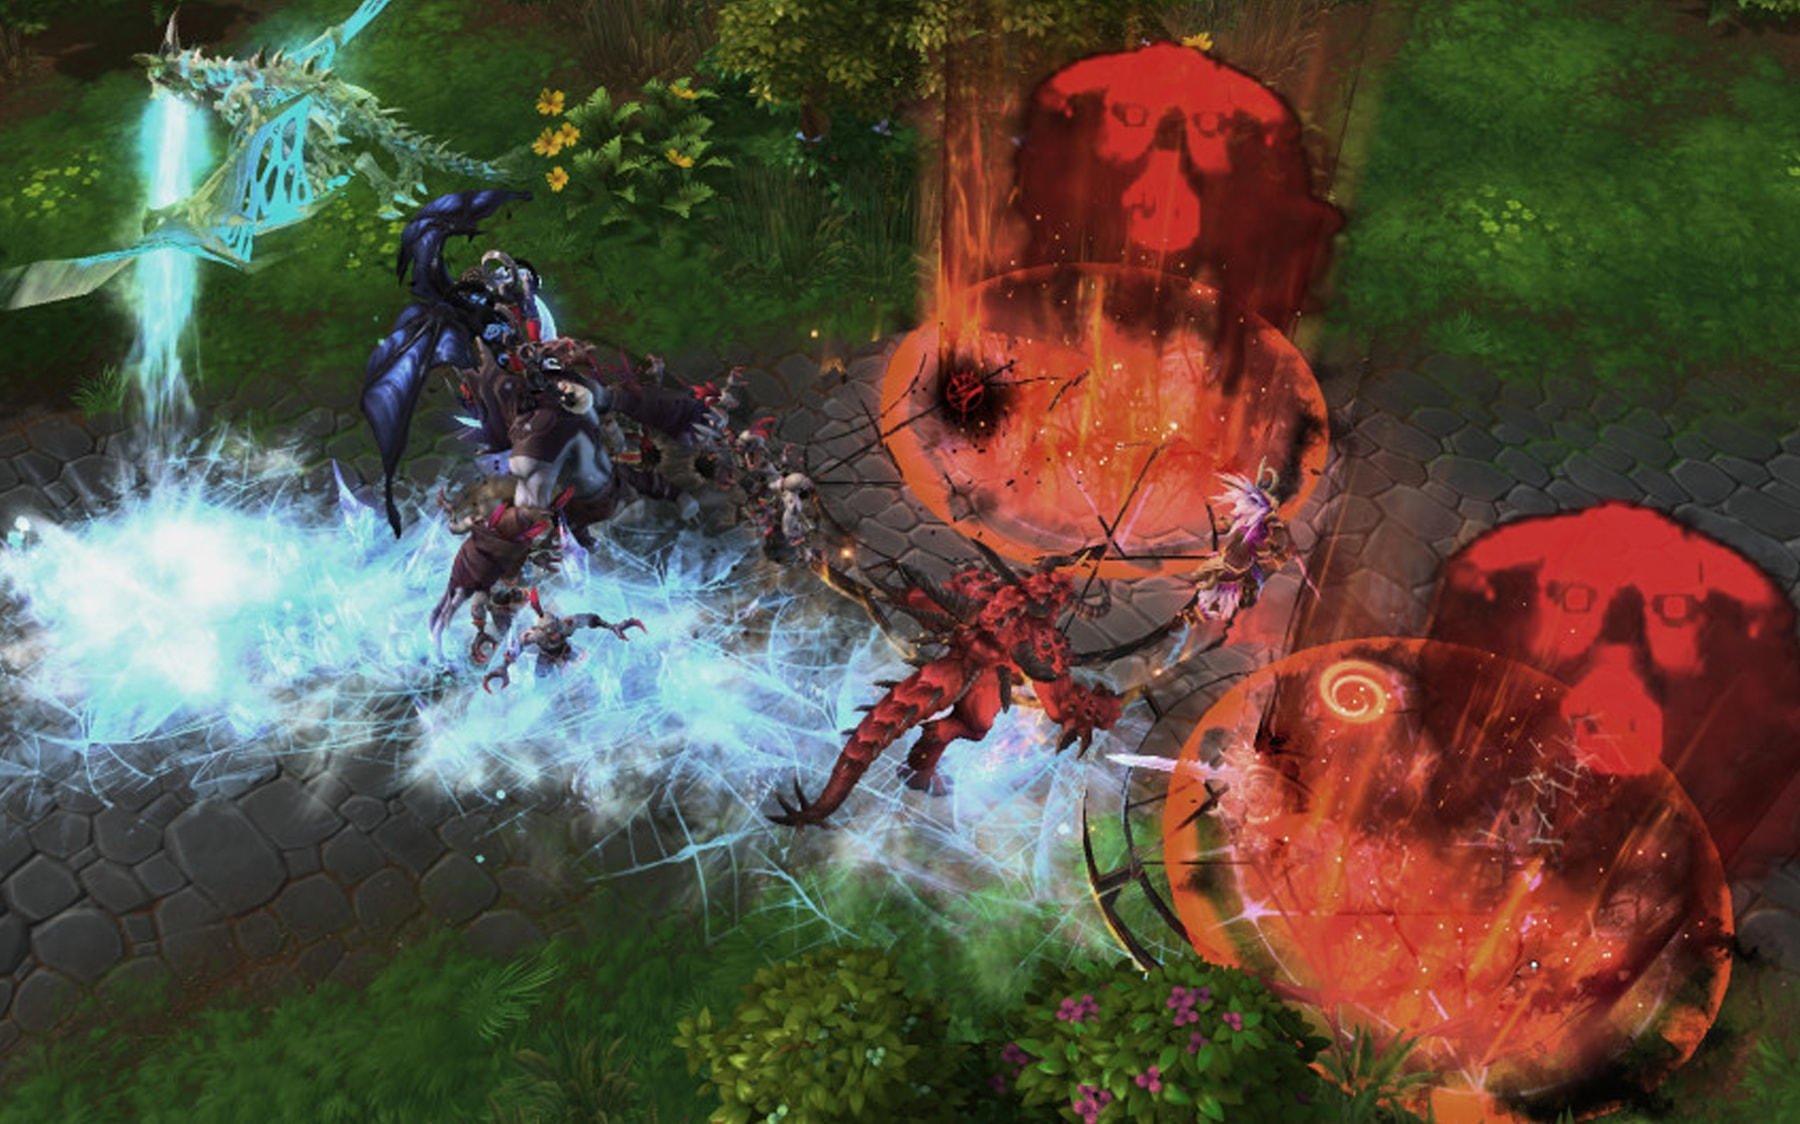 Screenshot from Heroes of the Storm of a battle in a forest